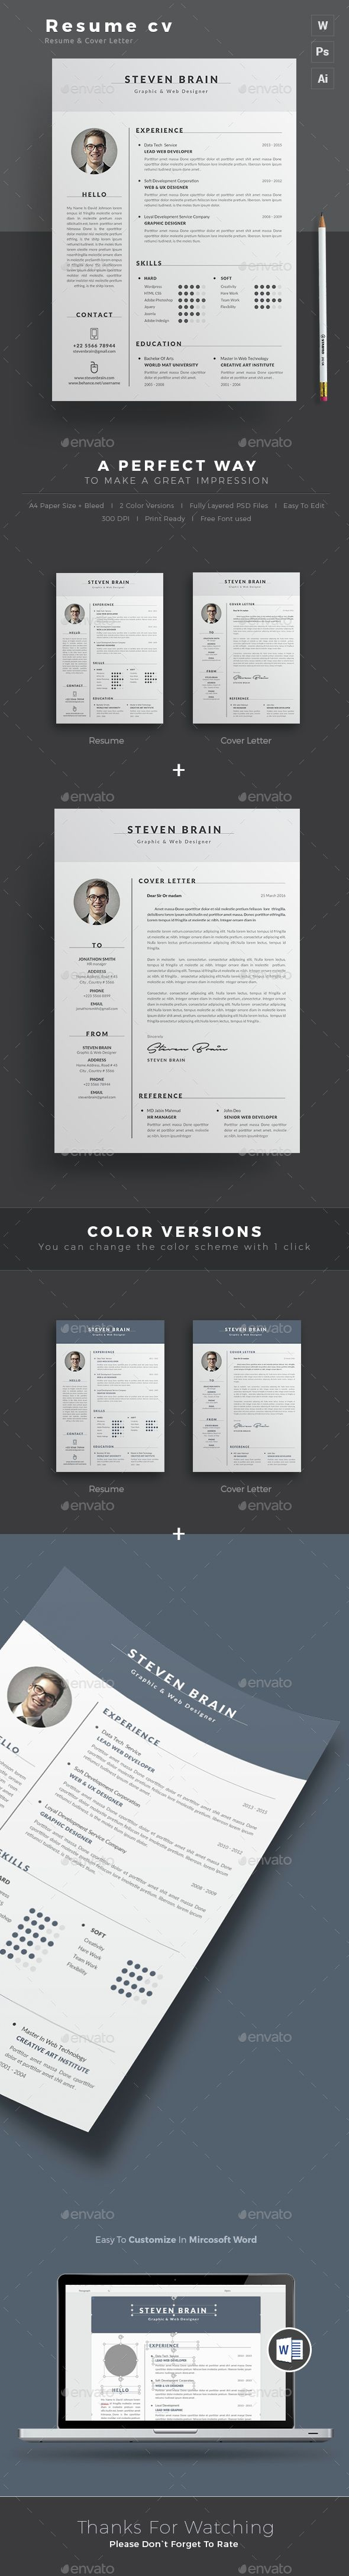 resume creative creative resume and design resume creative resume template cv template super modern and professional look elegant resume page designs are very easy to use and customize